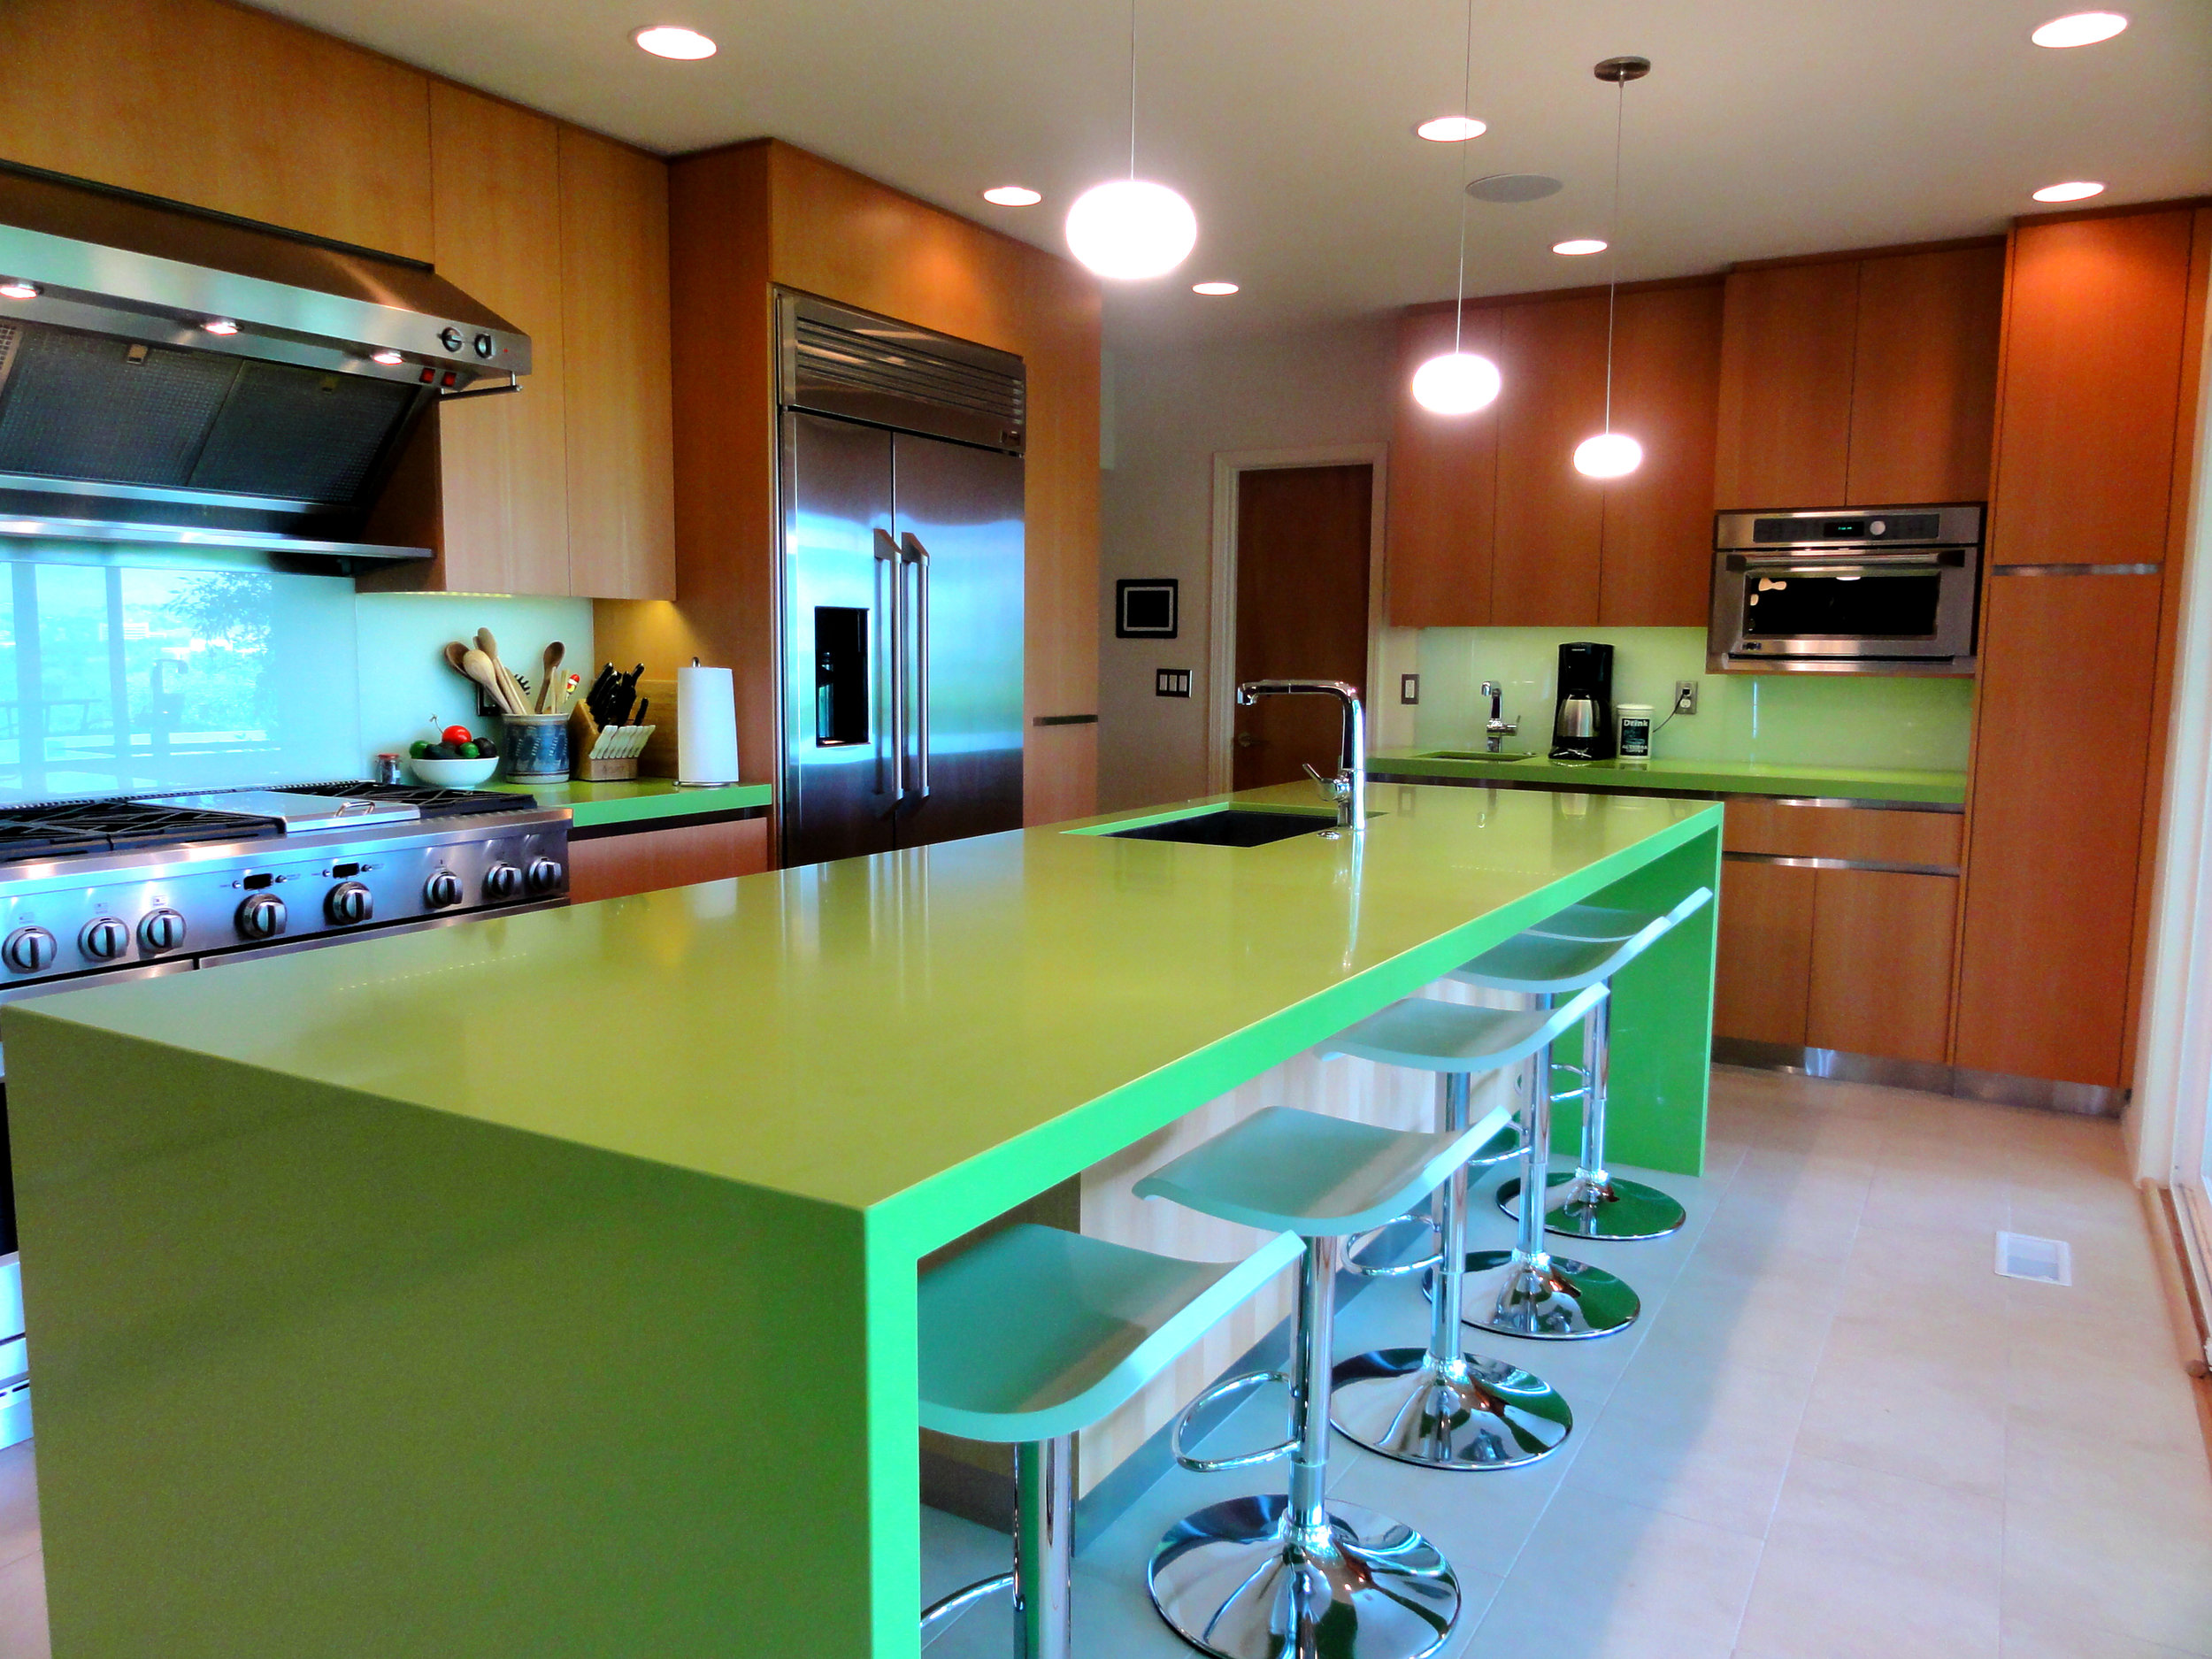 Hegland Kitchen.jpg